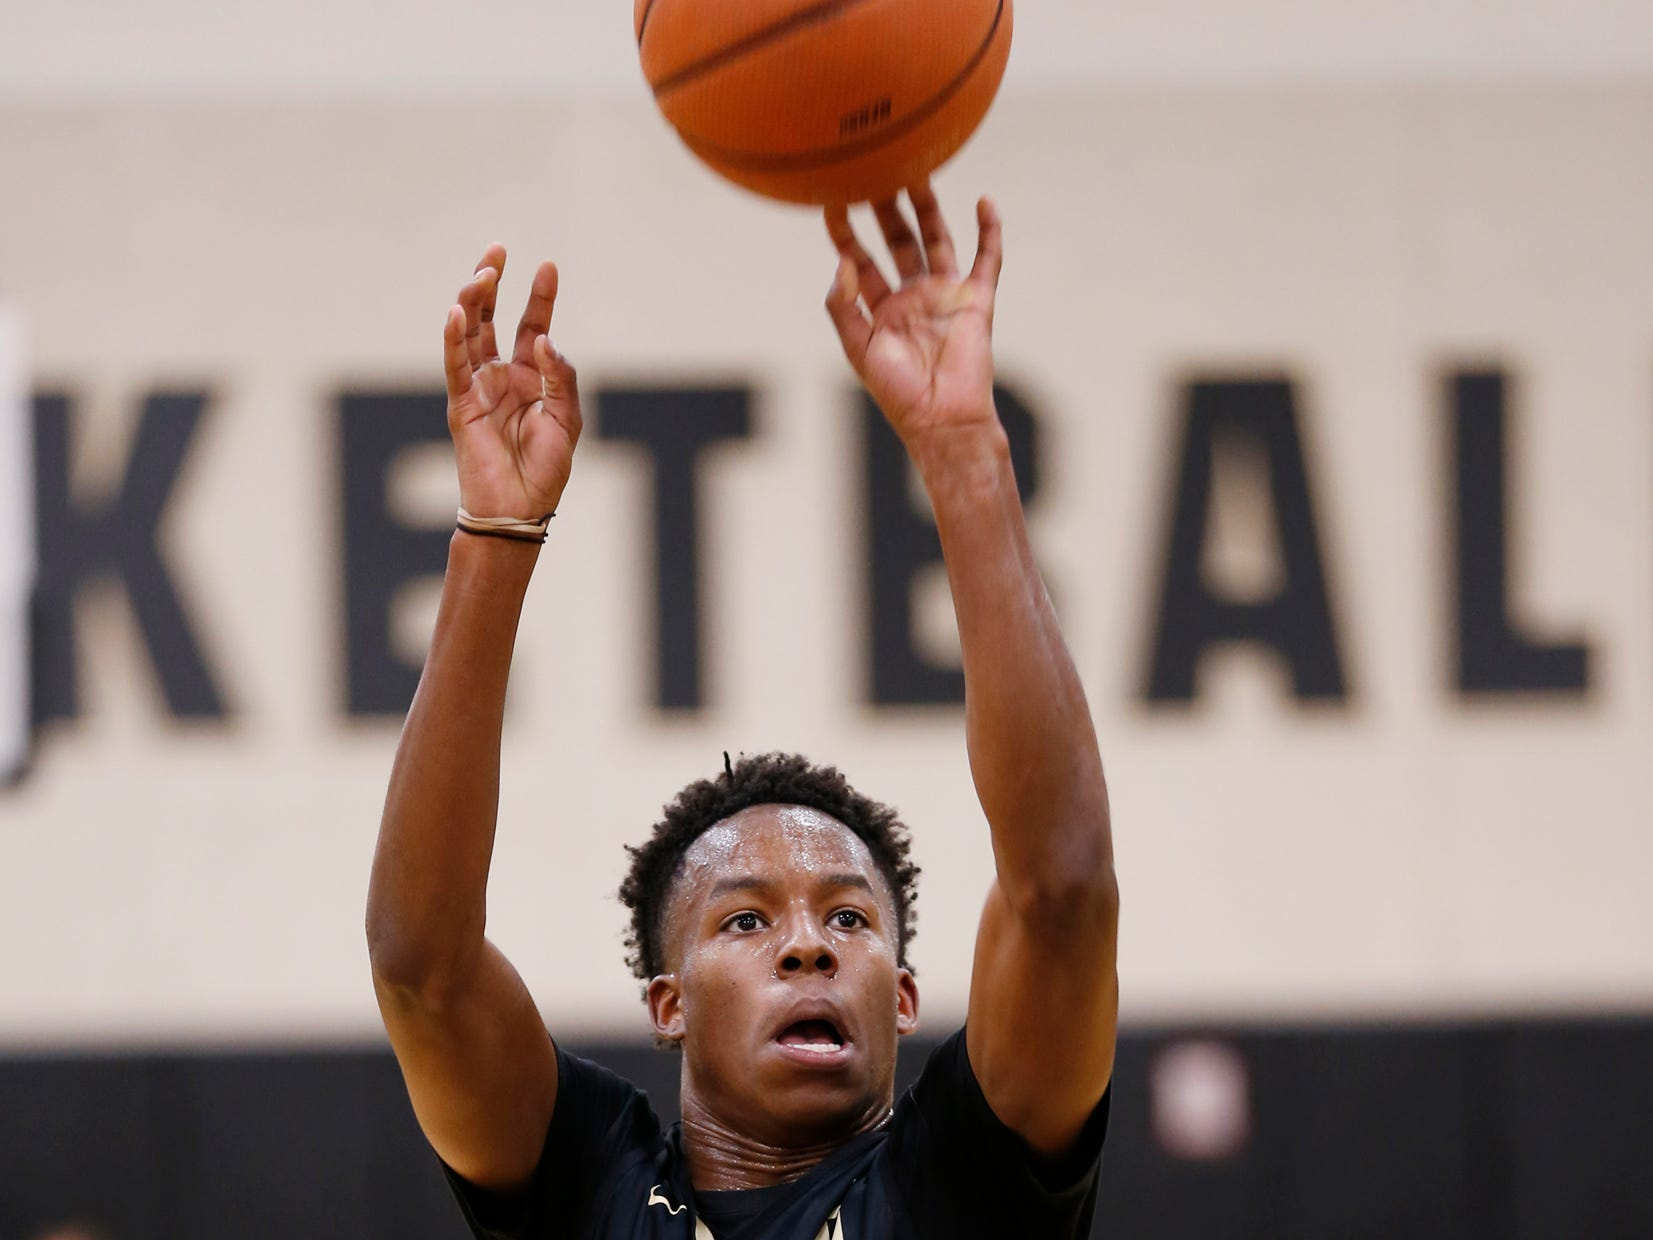 Eric Hunter Jr. with a shot during the first official practice of the season for Purdue men's basketball Tuesday, September 25, 2018, at Cardinal Court in Mackey Arena.